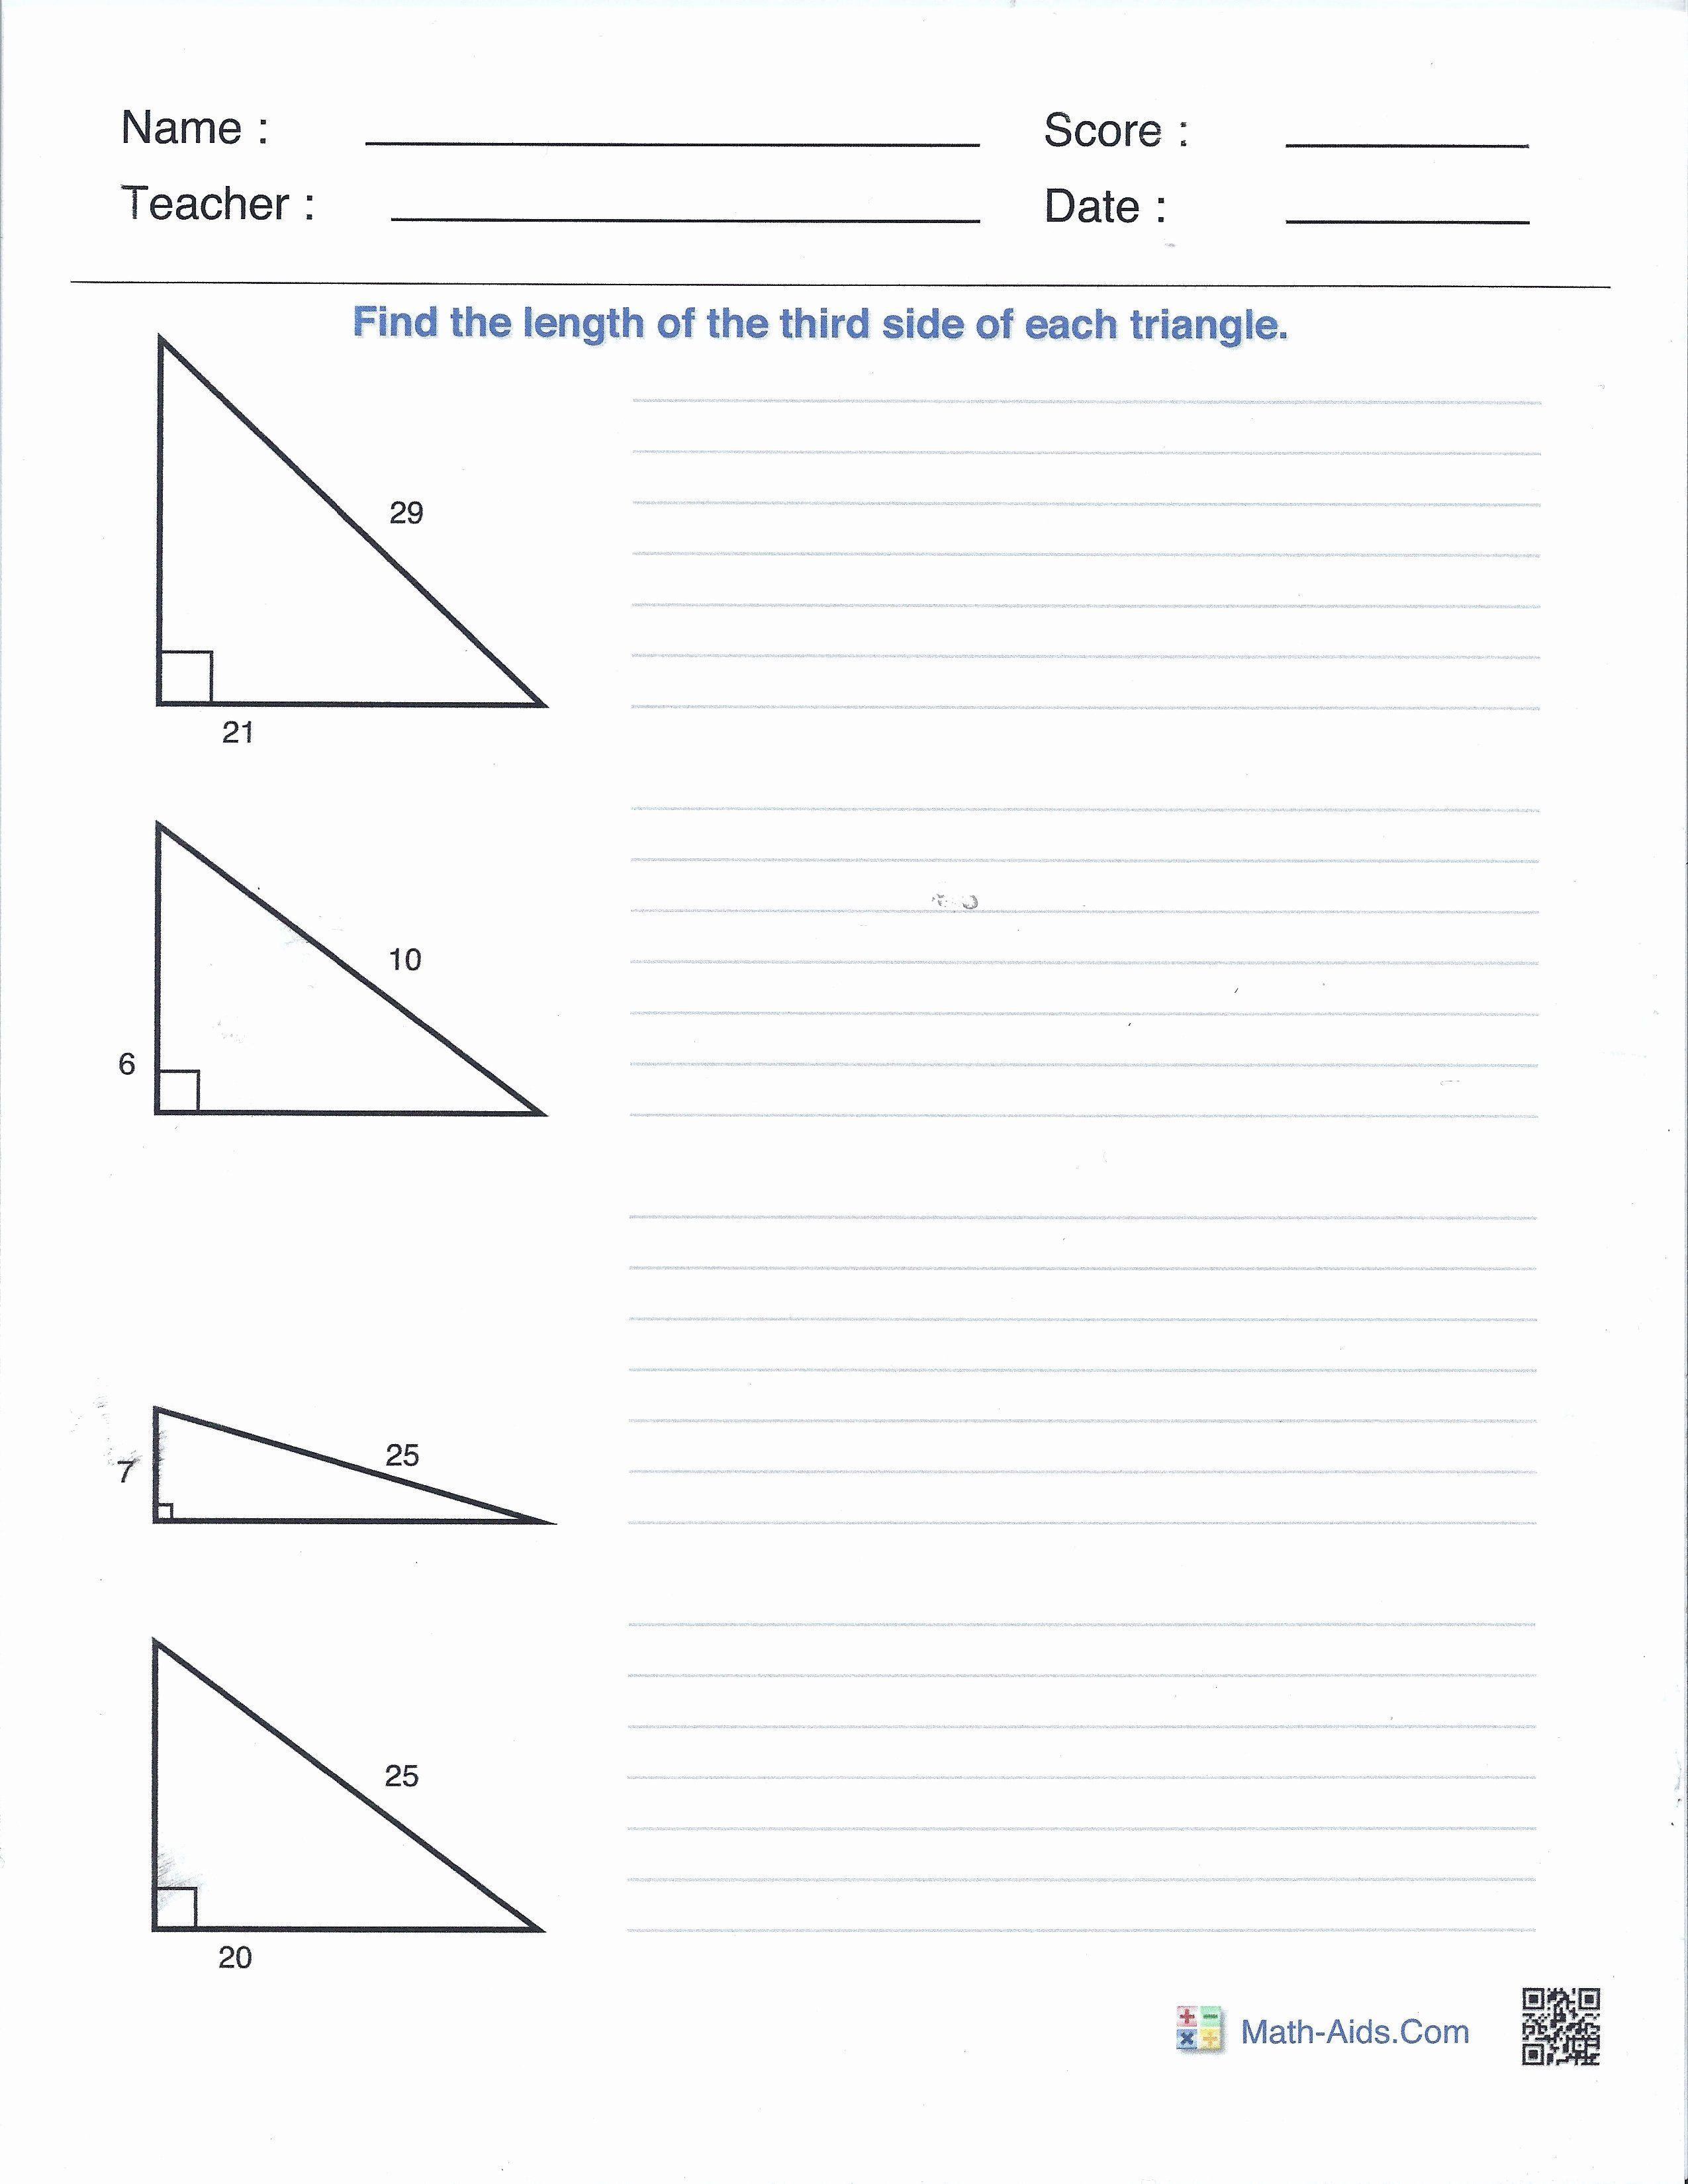 Pythagorean Theorem Worksheet With Answers Inspirational Right Angles And The Pythagorean Th In 2020 Practices Worksheets Pythagorean Theorem Printable Math Worksheets